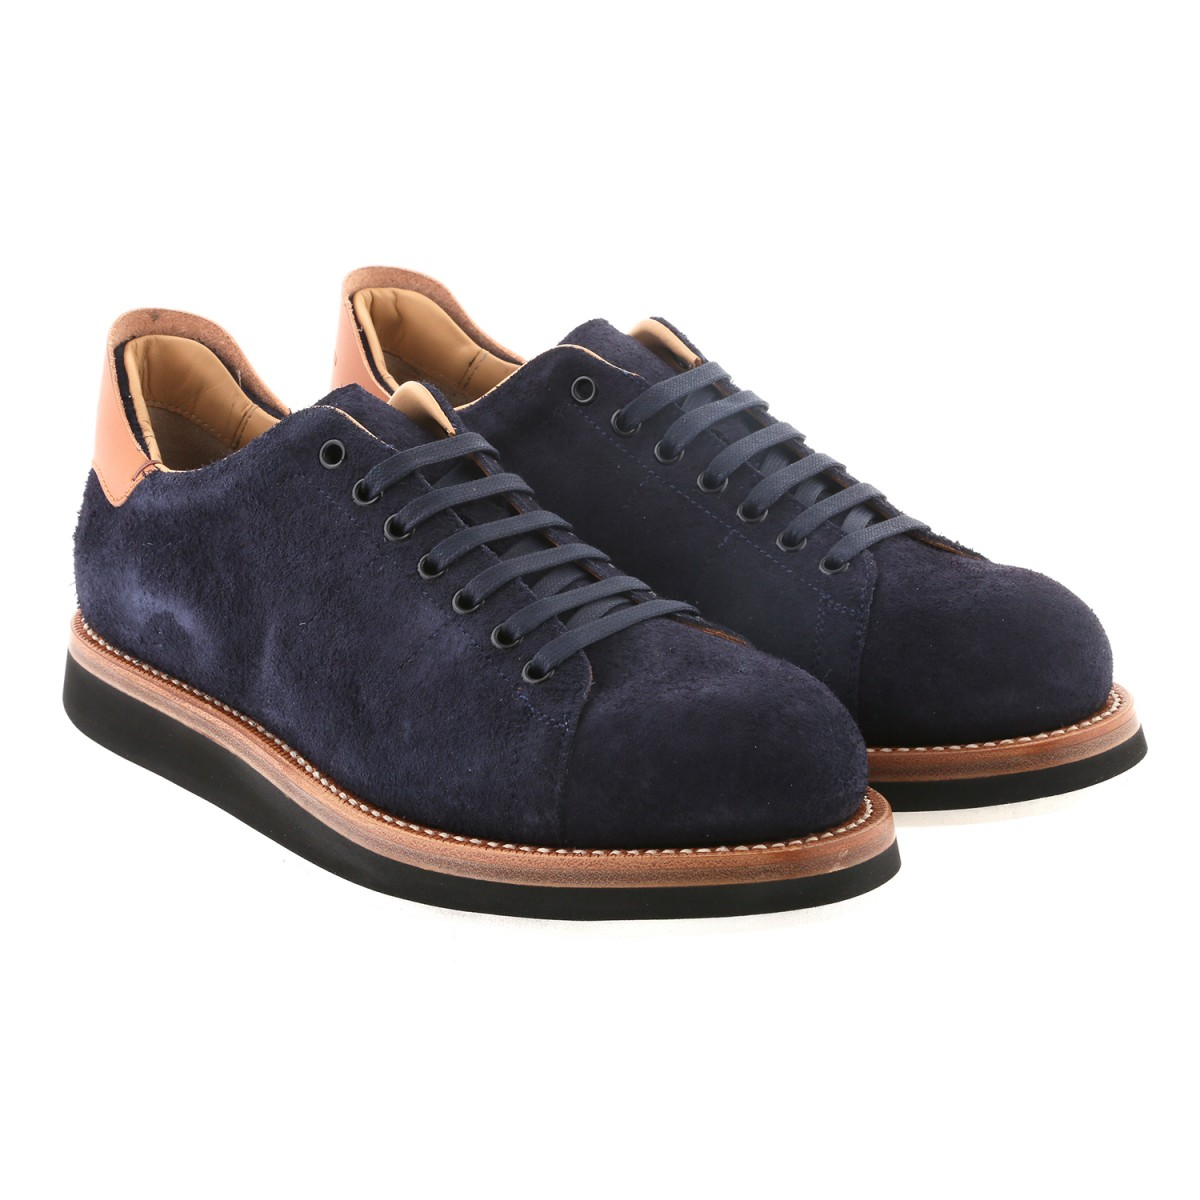 Cappelletti Men's Sneakers